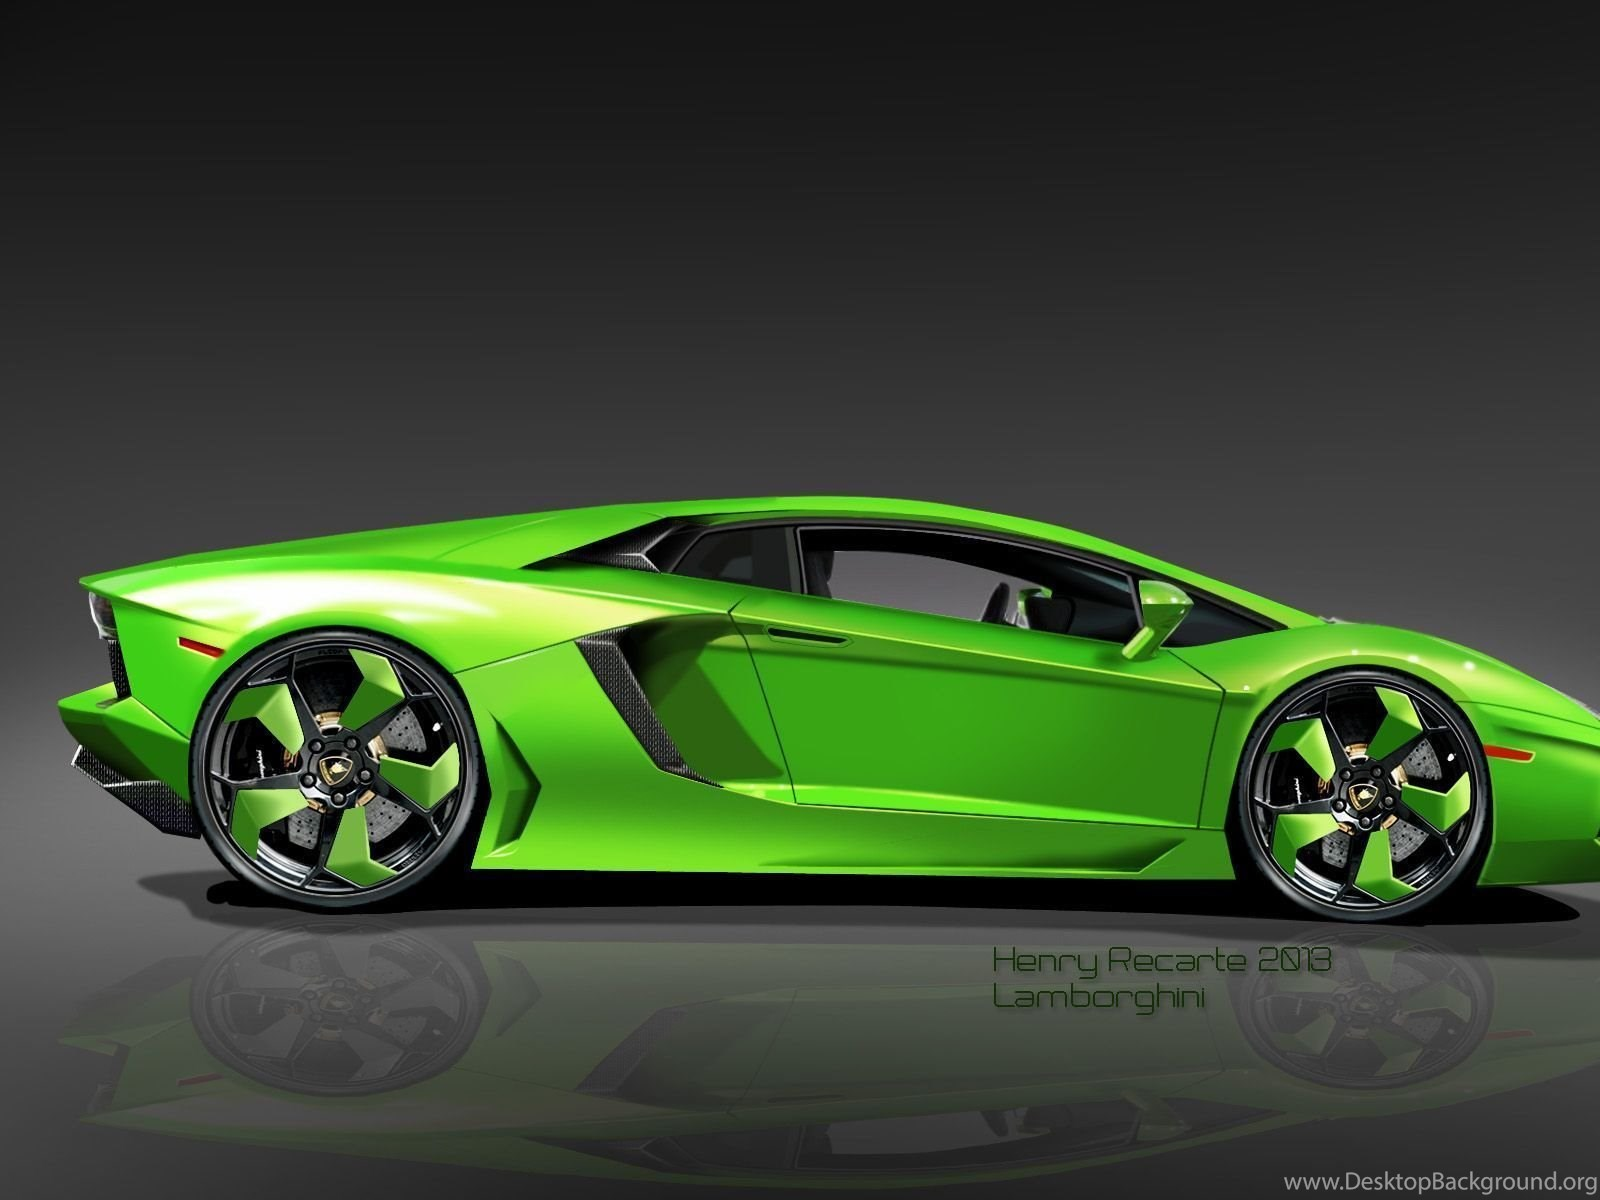 Car Wallpaper High Resolution: Green Lamborghini Wallpapers High Quality • Cars